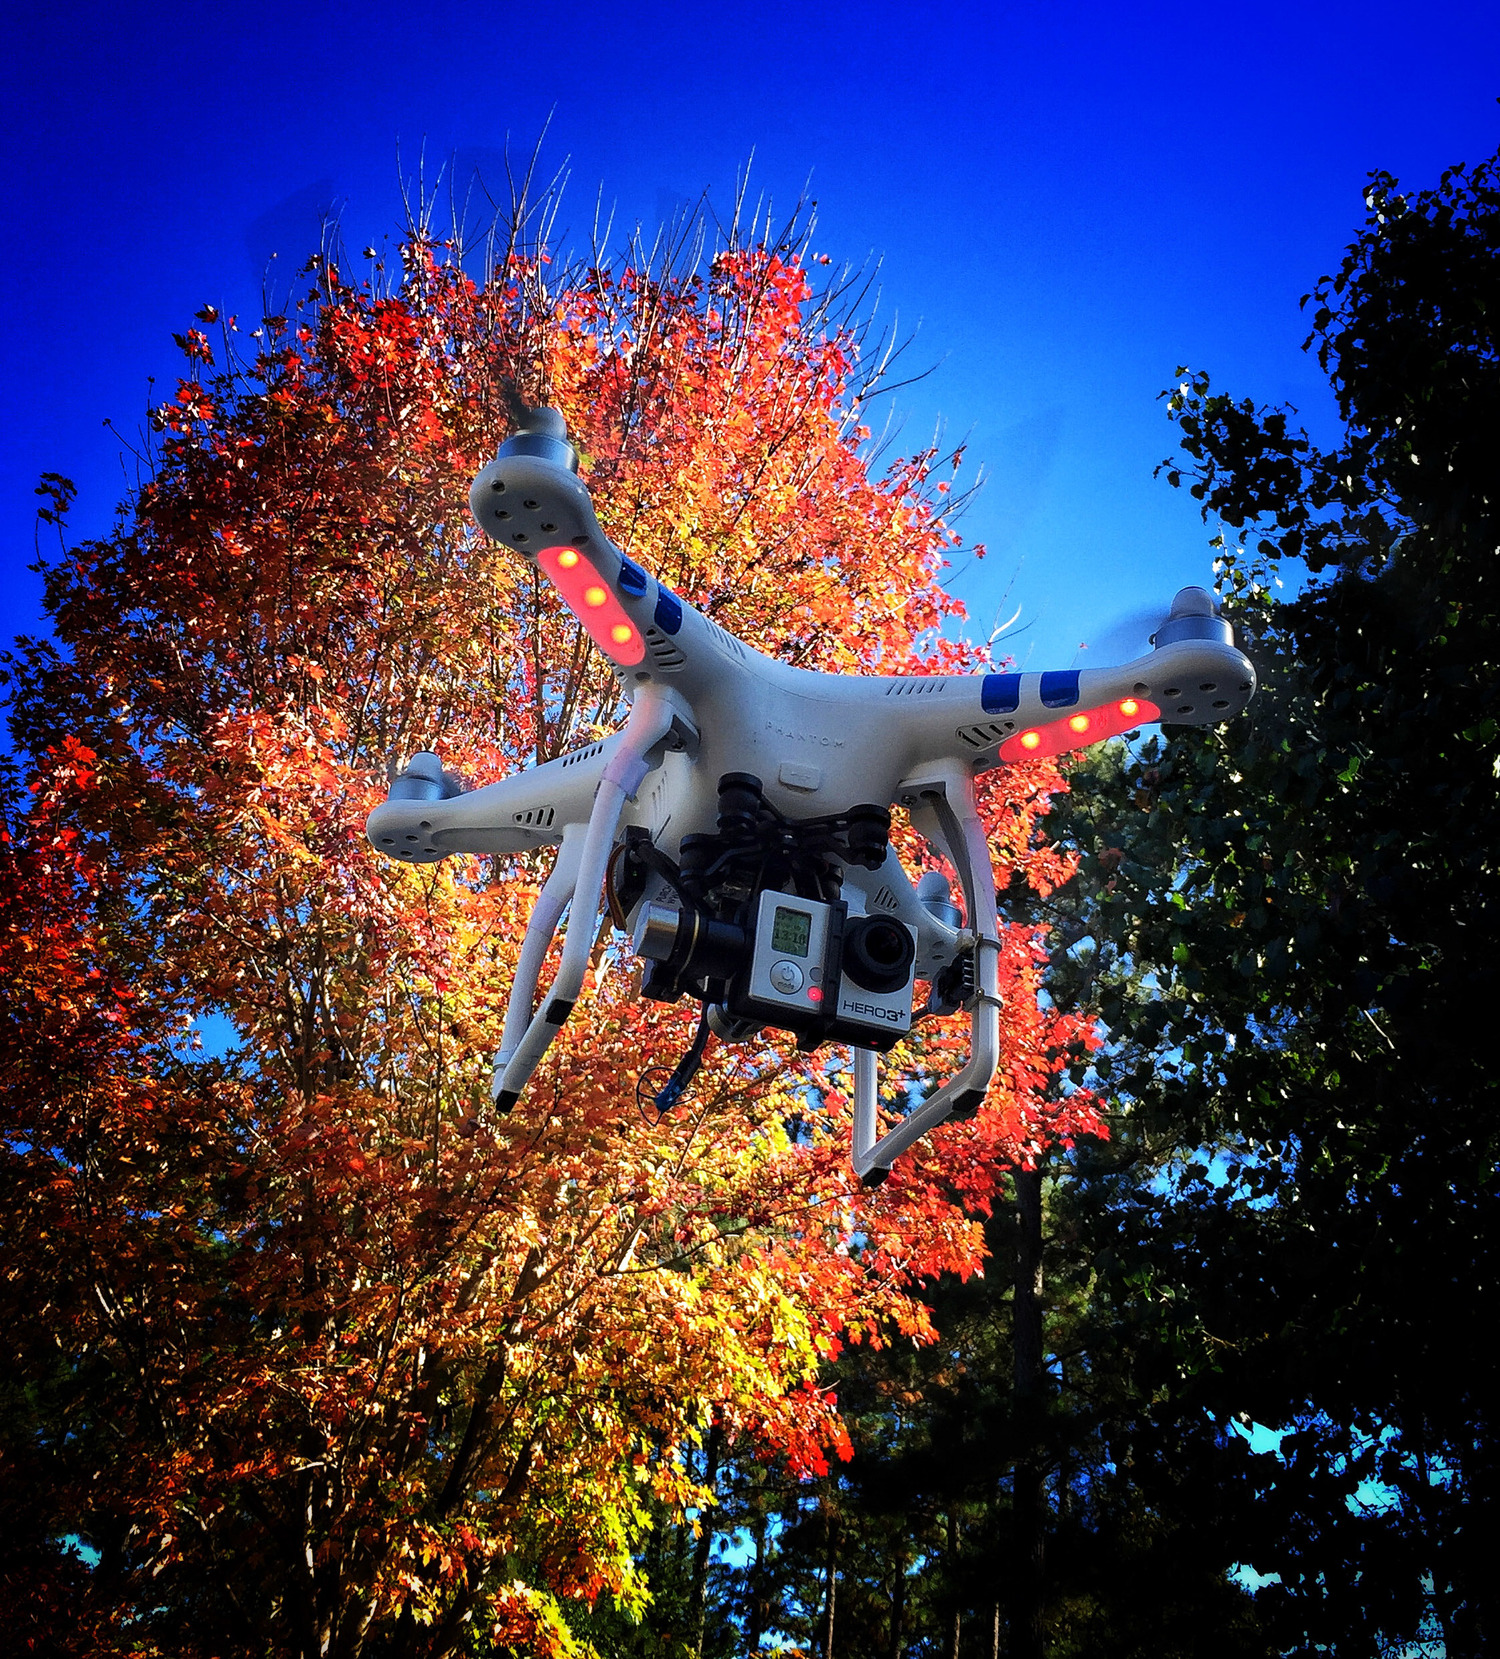 The DJI Phantom has enjoyed a dominant presence of what we consider to be a camera-drone.  Though, sometimes that PR has backfired.